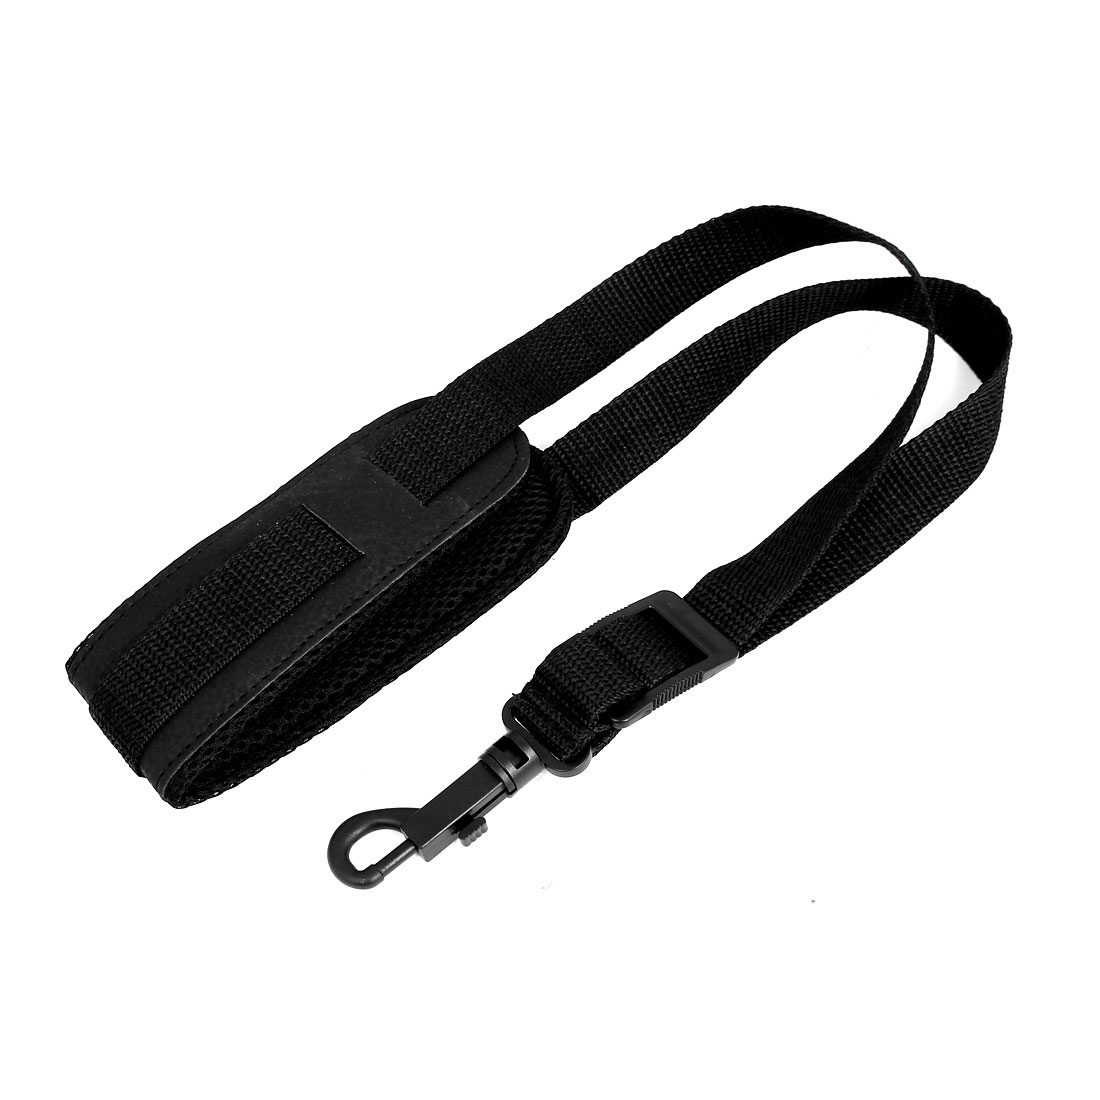 Black Nylon Adjustable Saxophone Sax Neck Strap Neckband w Swivel Snap Hook